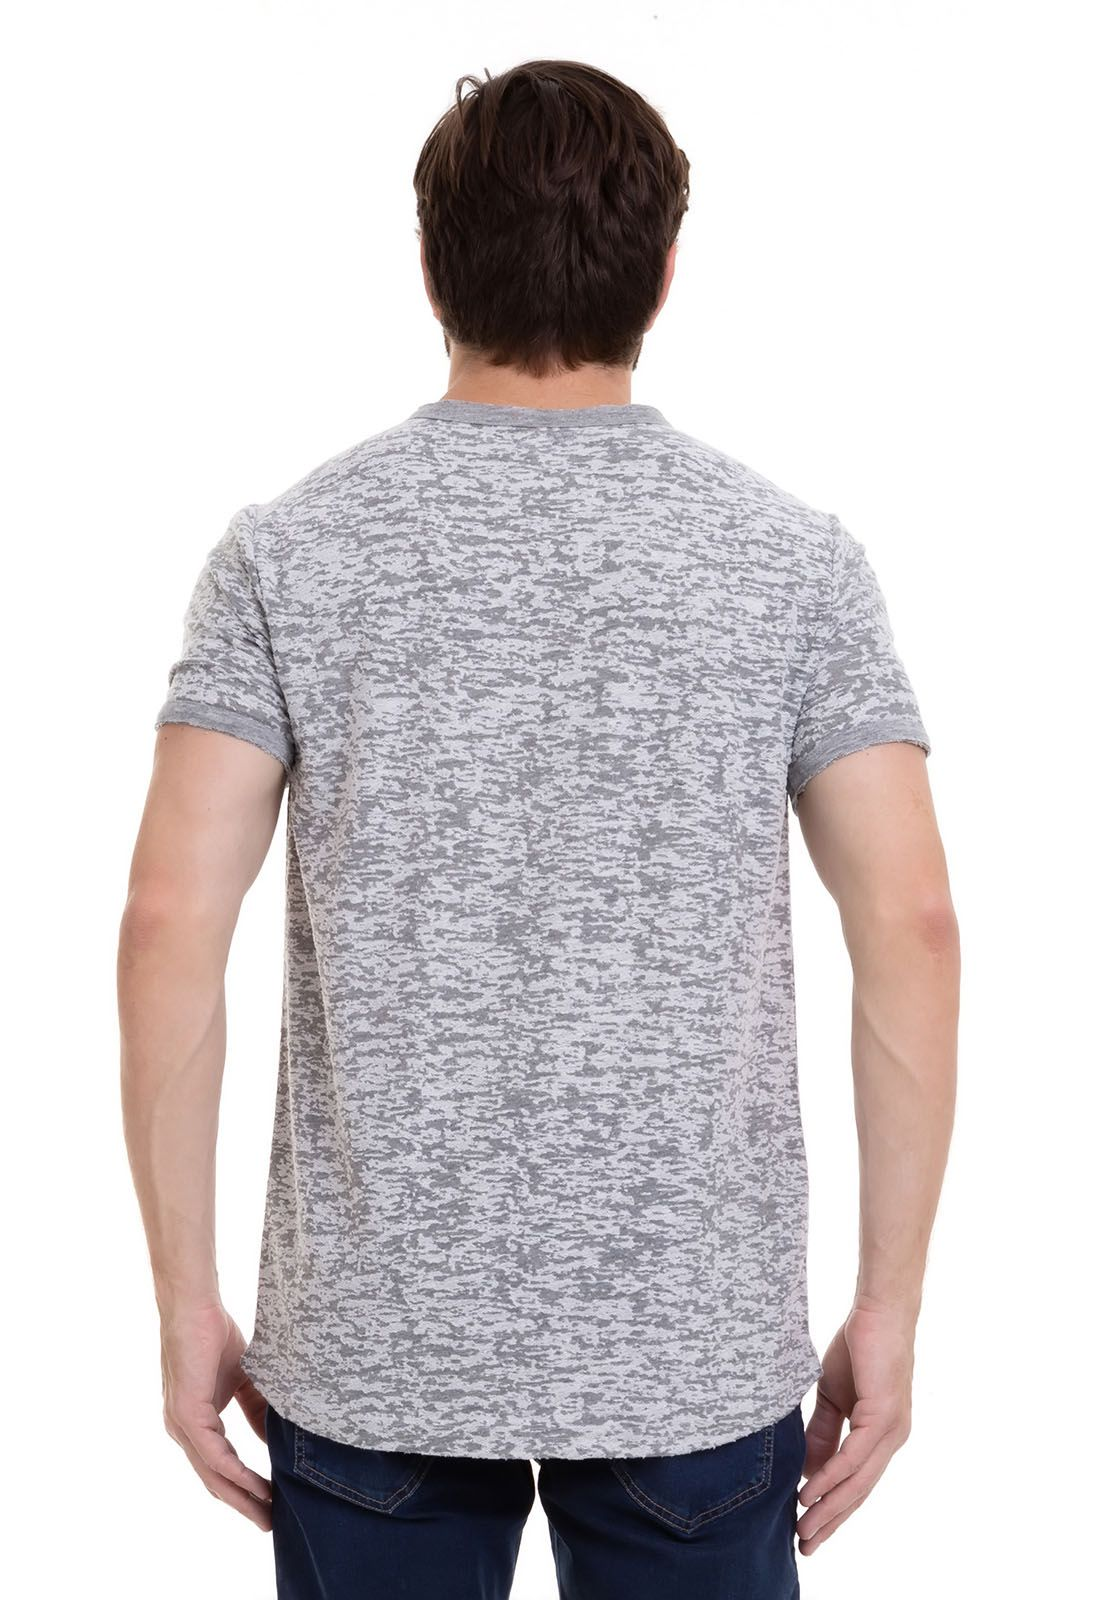 Camiseta masculina long Devorê